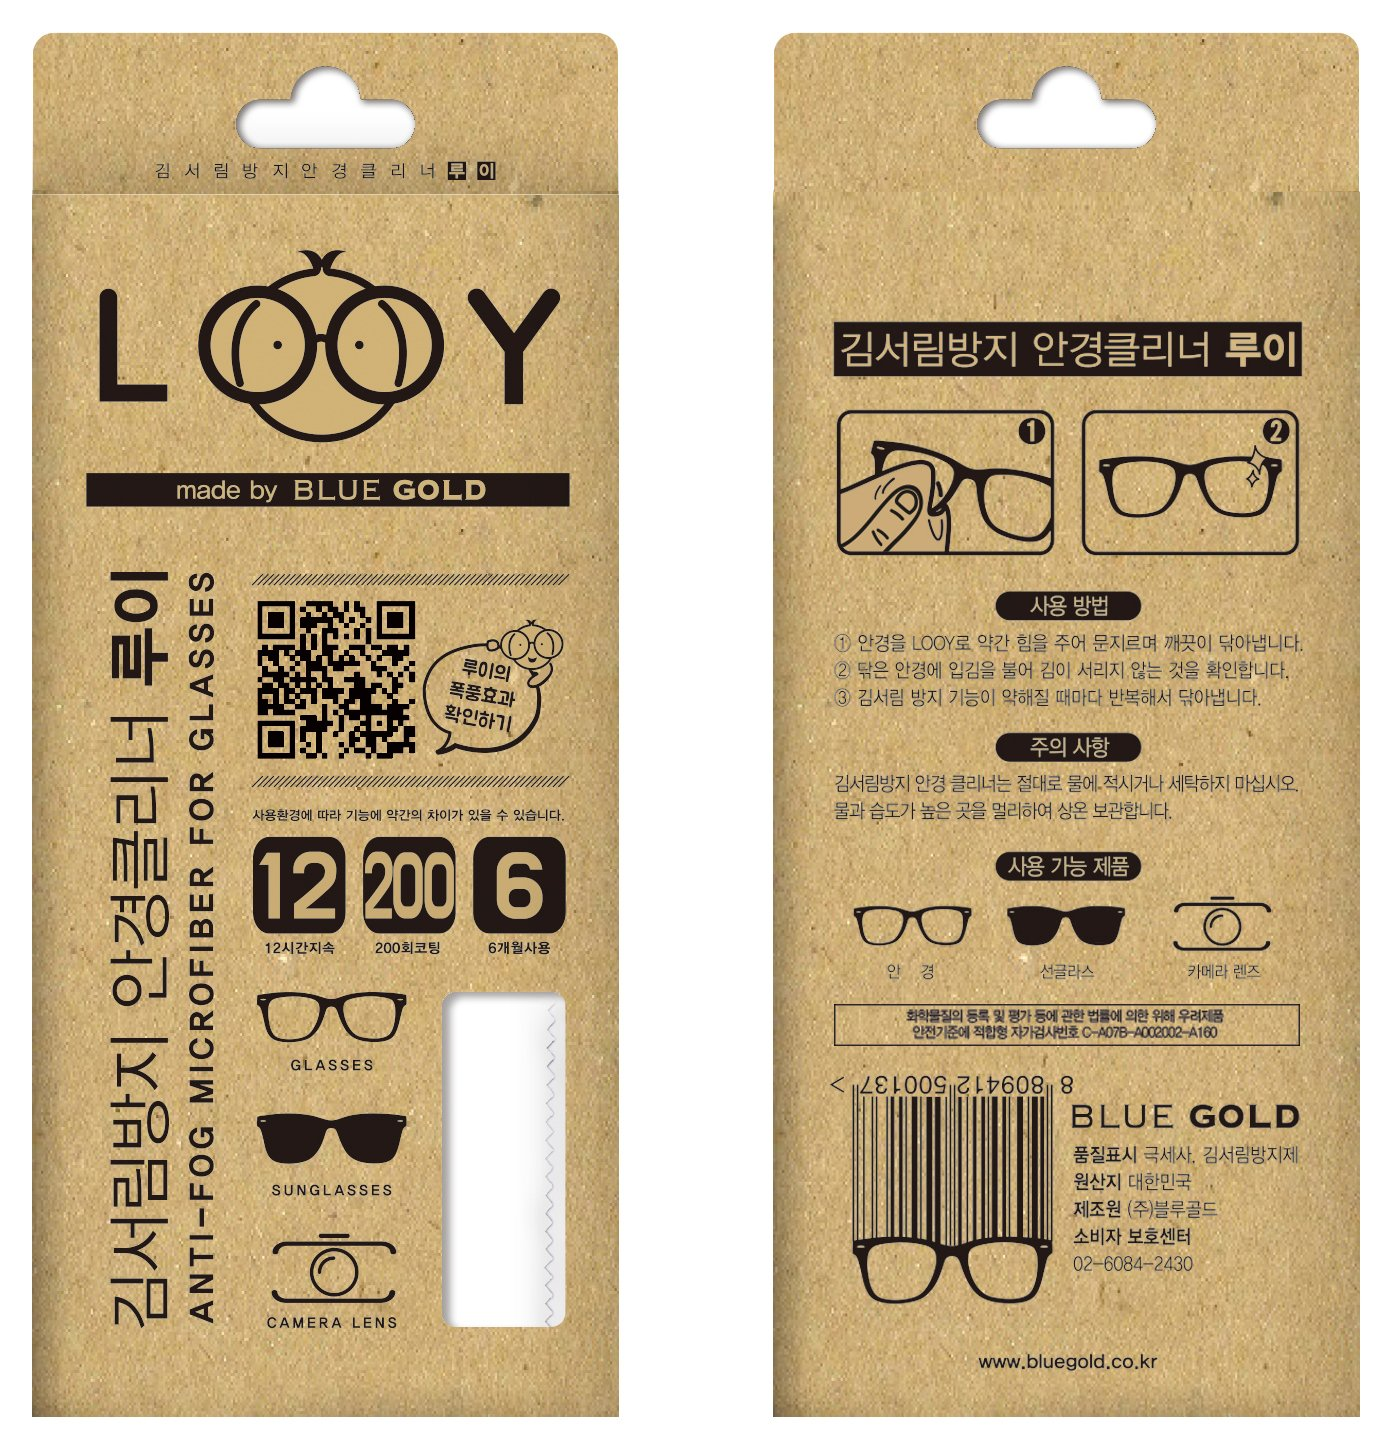 [LOOY Antifog Reusable Wipe] - Clear, Fog-Free Eyesight for Glasses, Sunglasses, Snowboard/Ski Goggles, Helmets, Camera Lens, Buffs and More BLUEGOLD